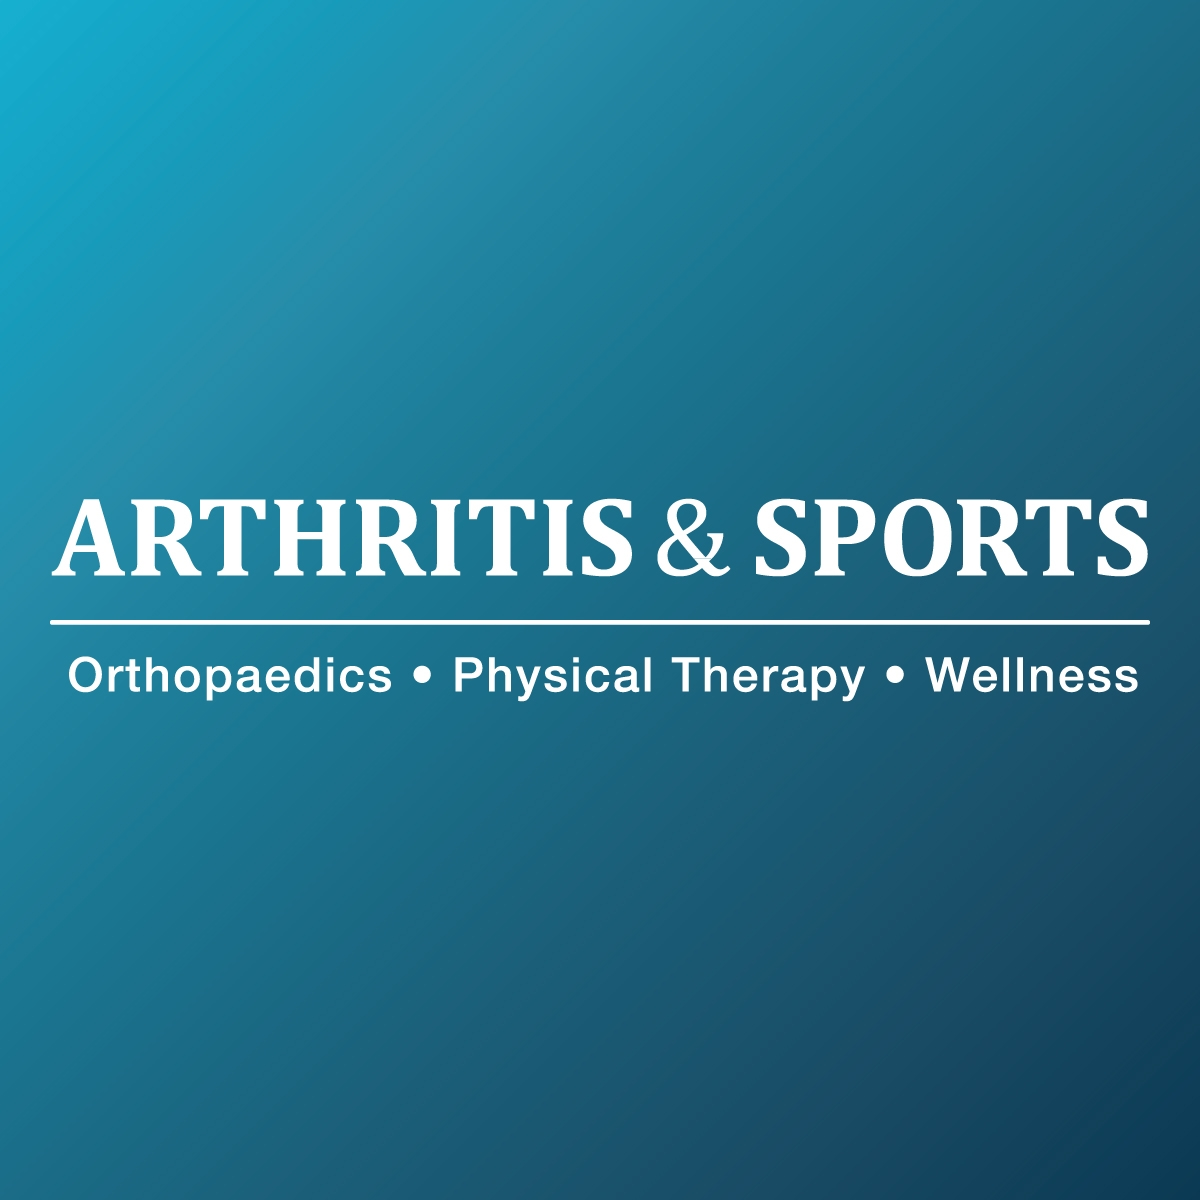 Arthritis & Sports Confirms They Are Using Laser Therapy to Treat Patients